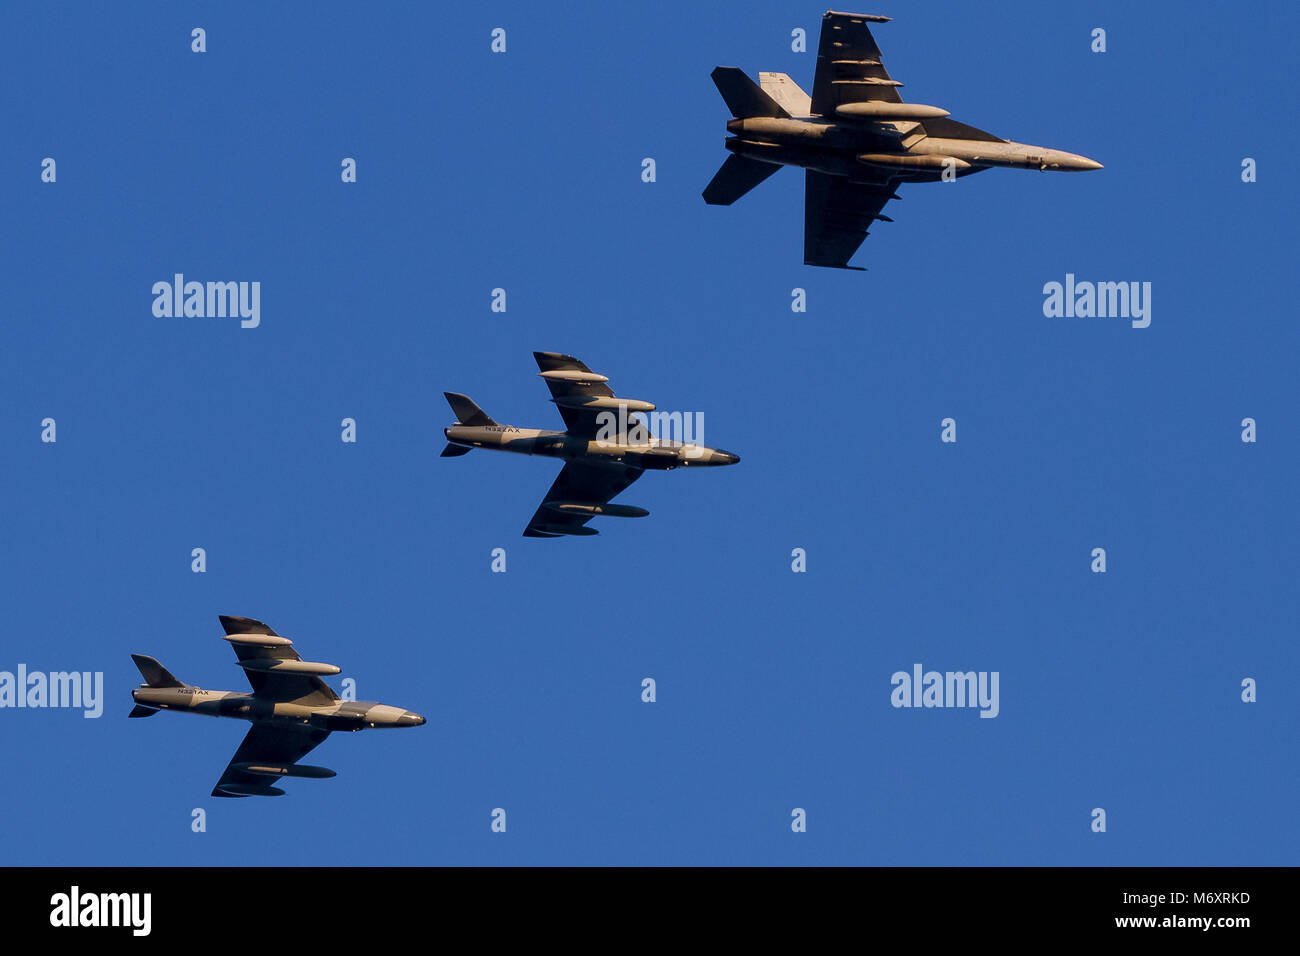 US Navy Boeing IF/A18F Super Hornet e due Airborne Tactical Advantage Company (ATAC) Hawker Hunter Mark 58s, sorvolando Foto Stock